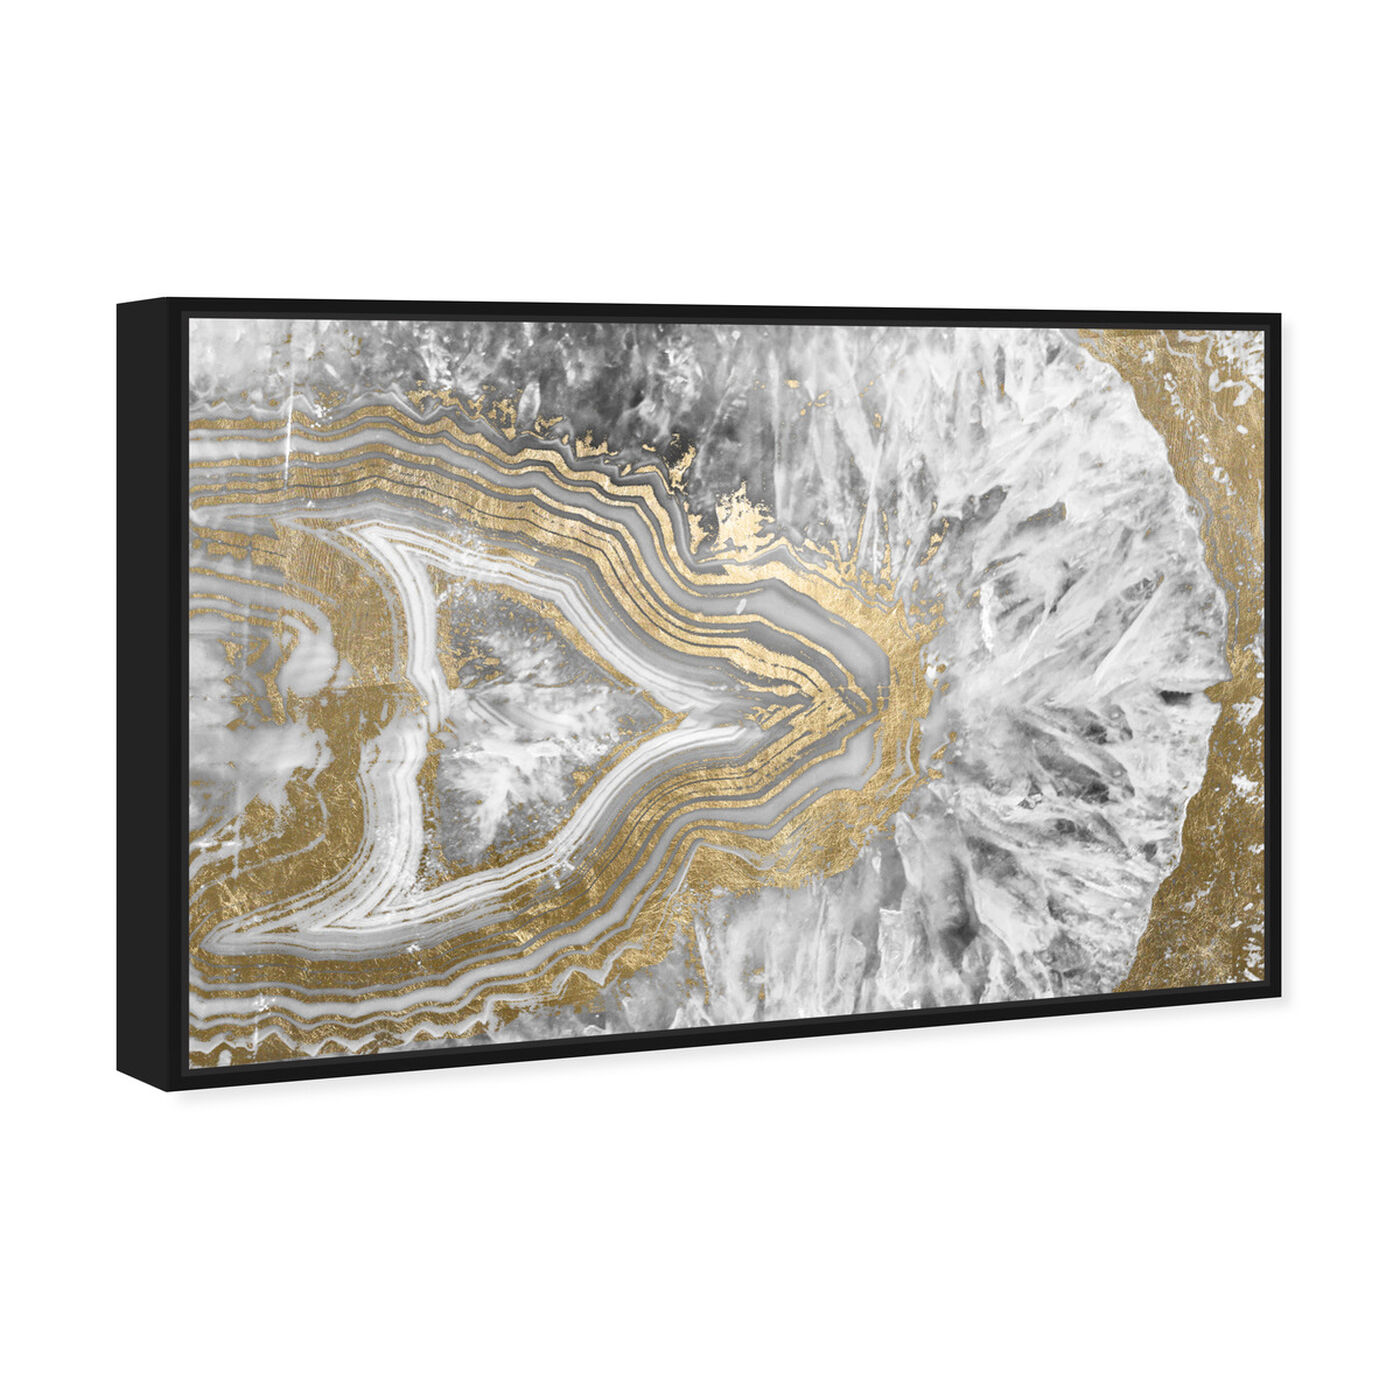 Angled view of Agate Geode Crystal featuring abstract and crystals art.